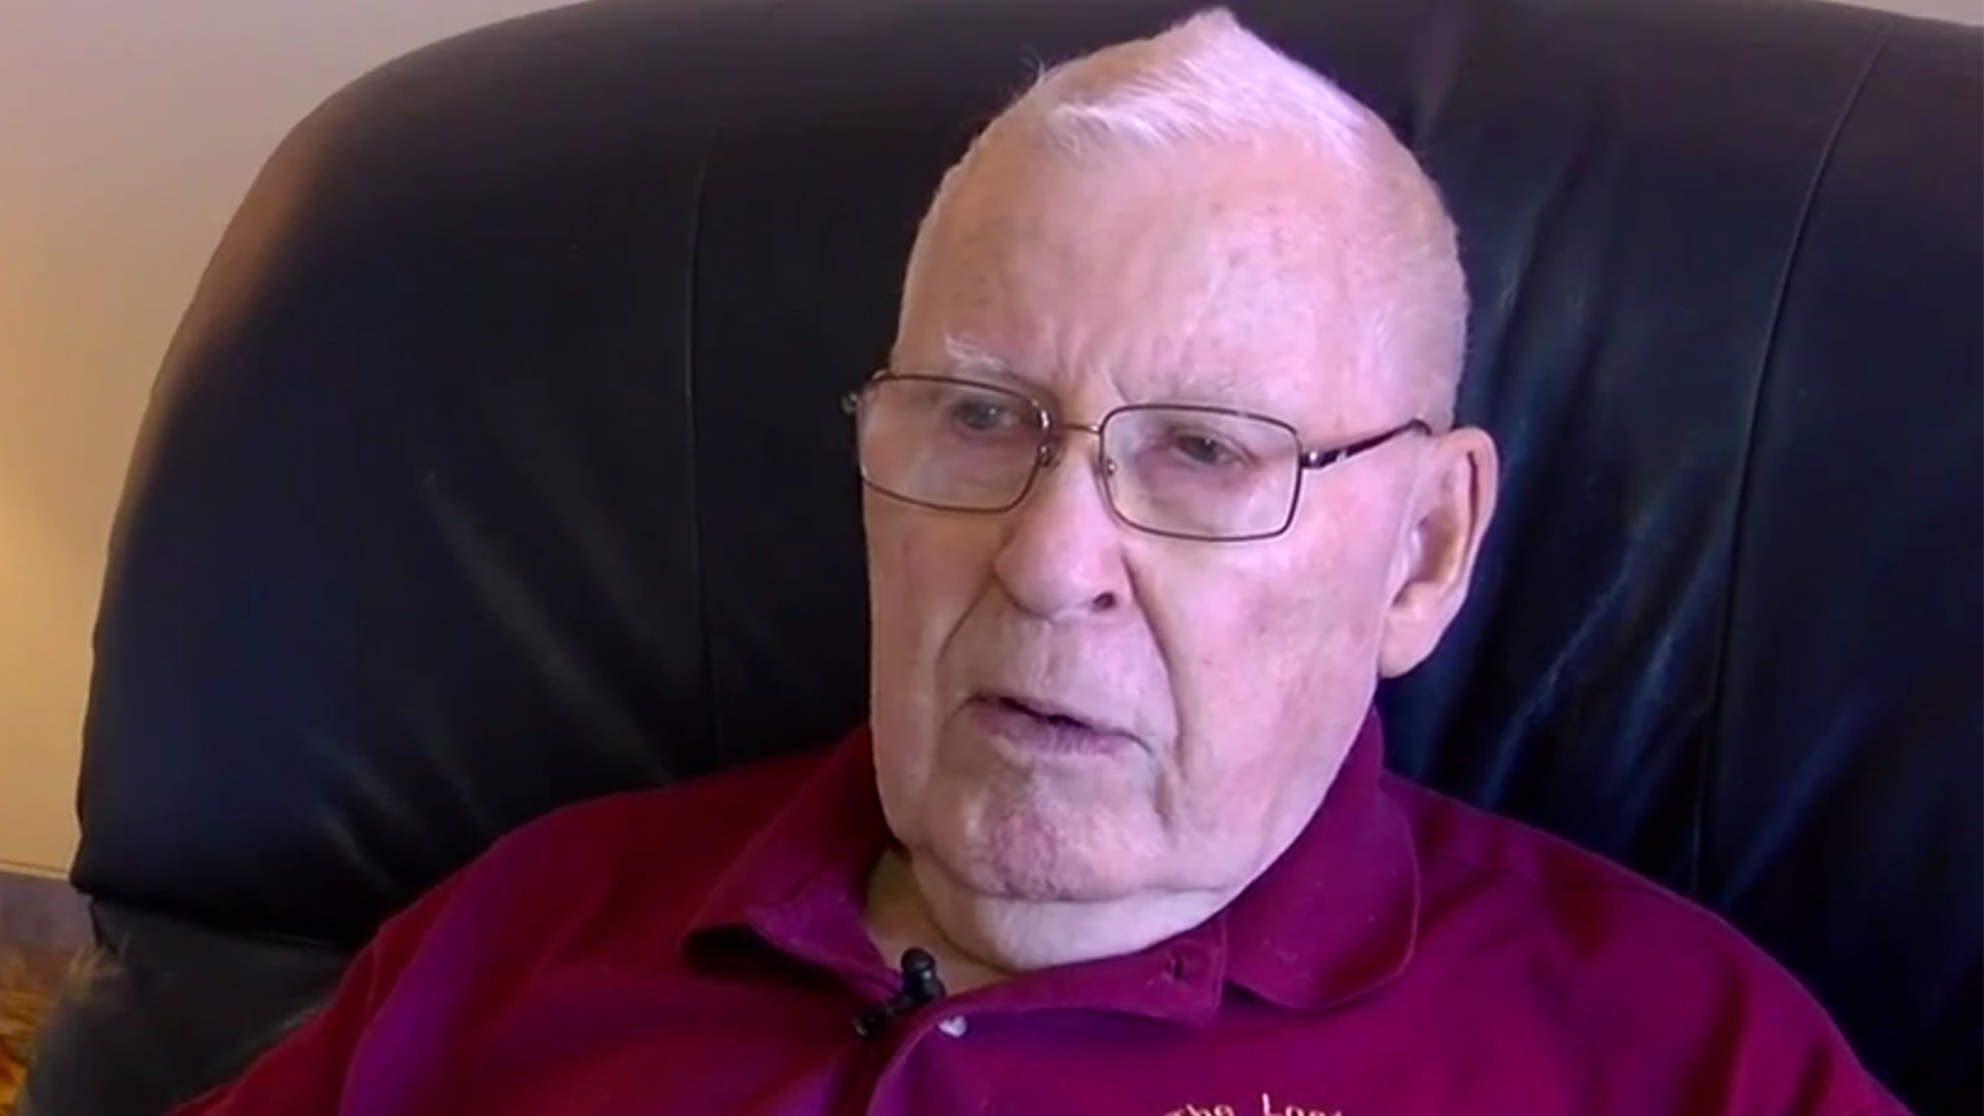 Man, 87, Searches for Job to Pay for Wife's Medical Bills: 'He's a Very Good Man', She Says